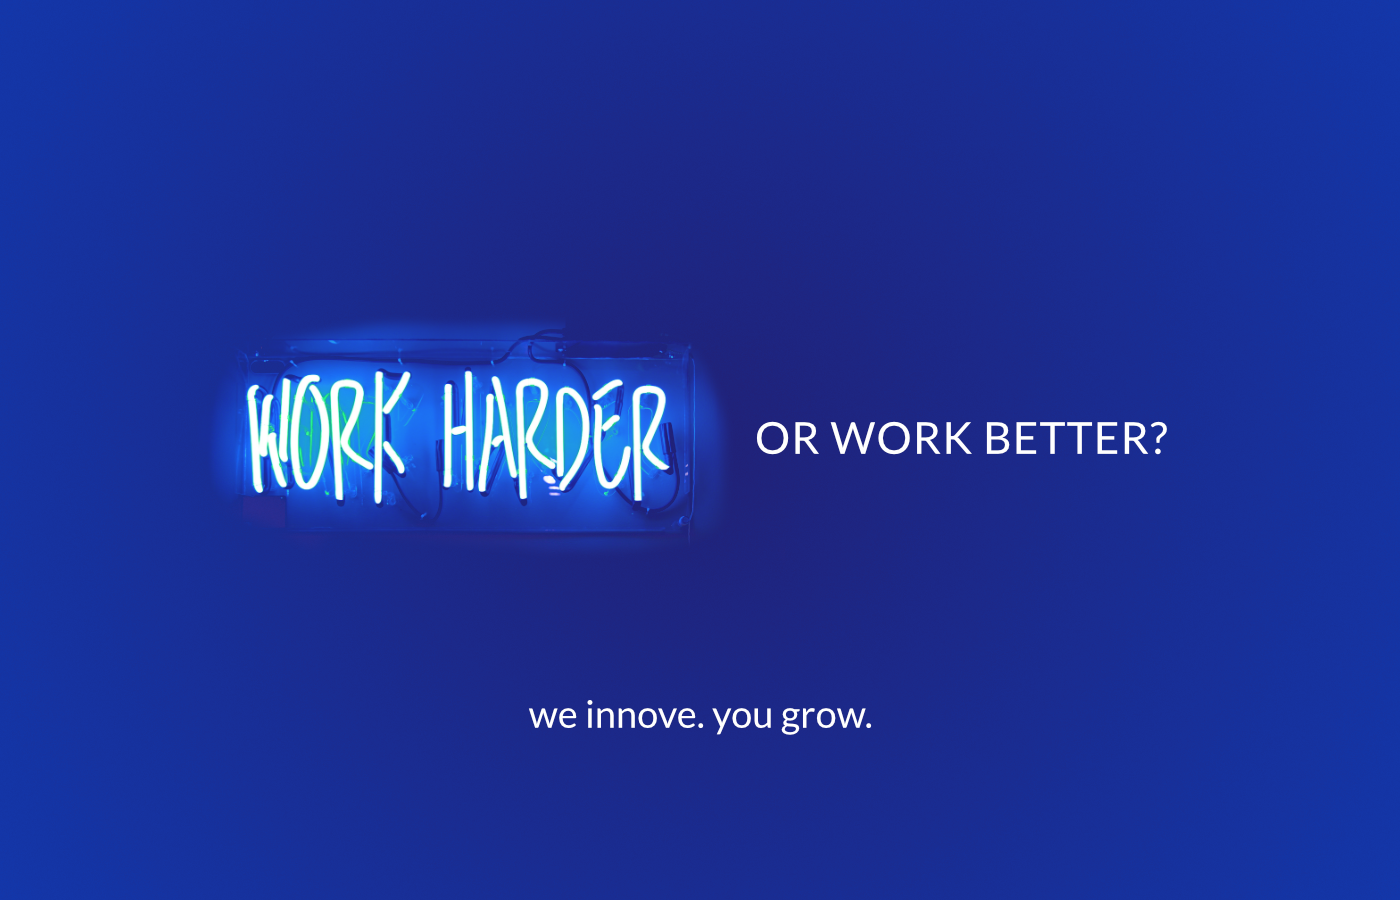 Work harder or work better? we innove. you grow.